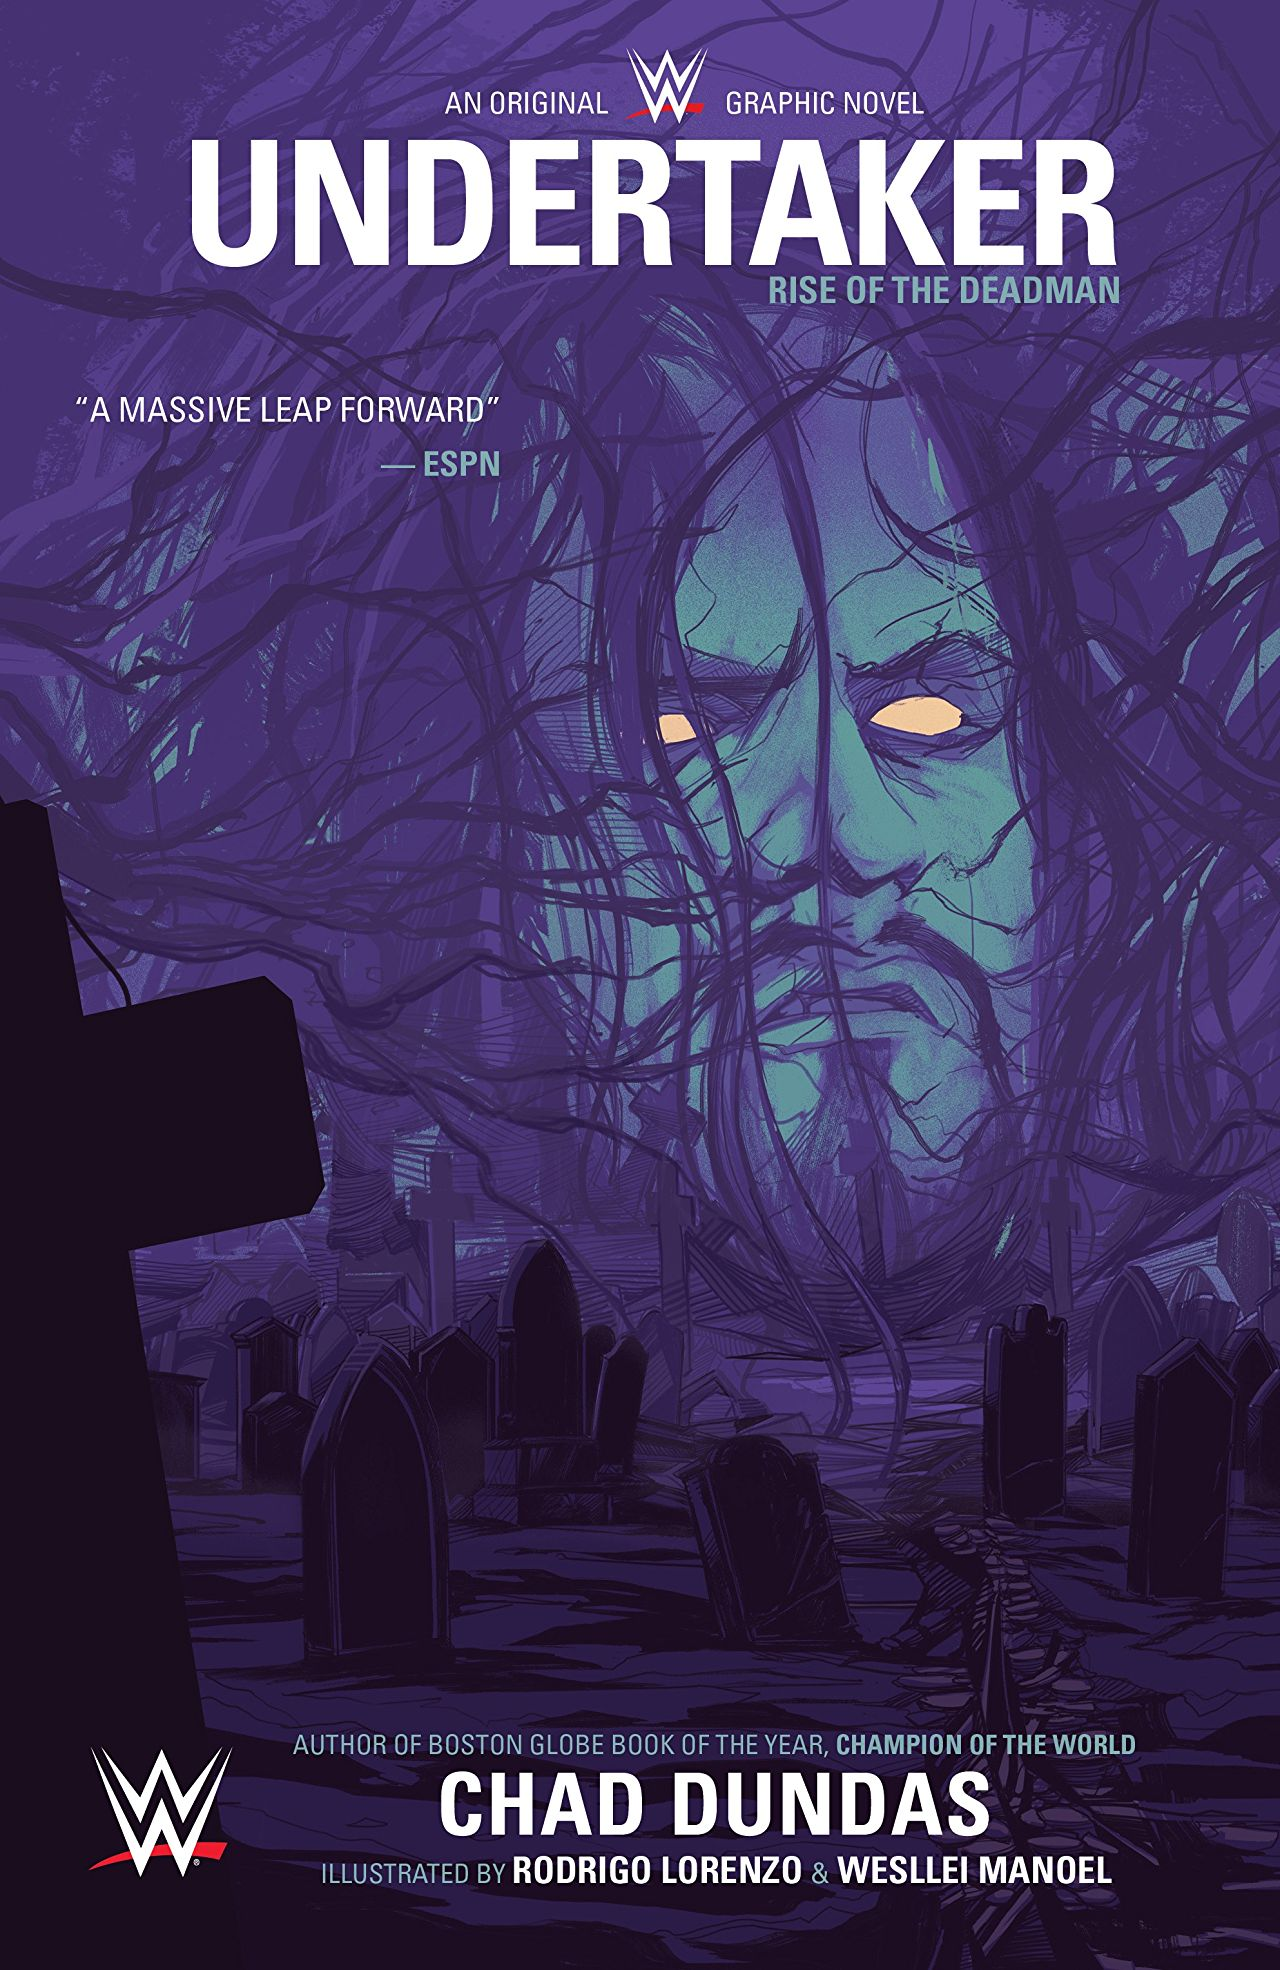 'WWE Original Graphic Novel: Undertaker' review: A fitting tale for a true legend